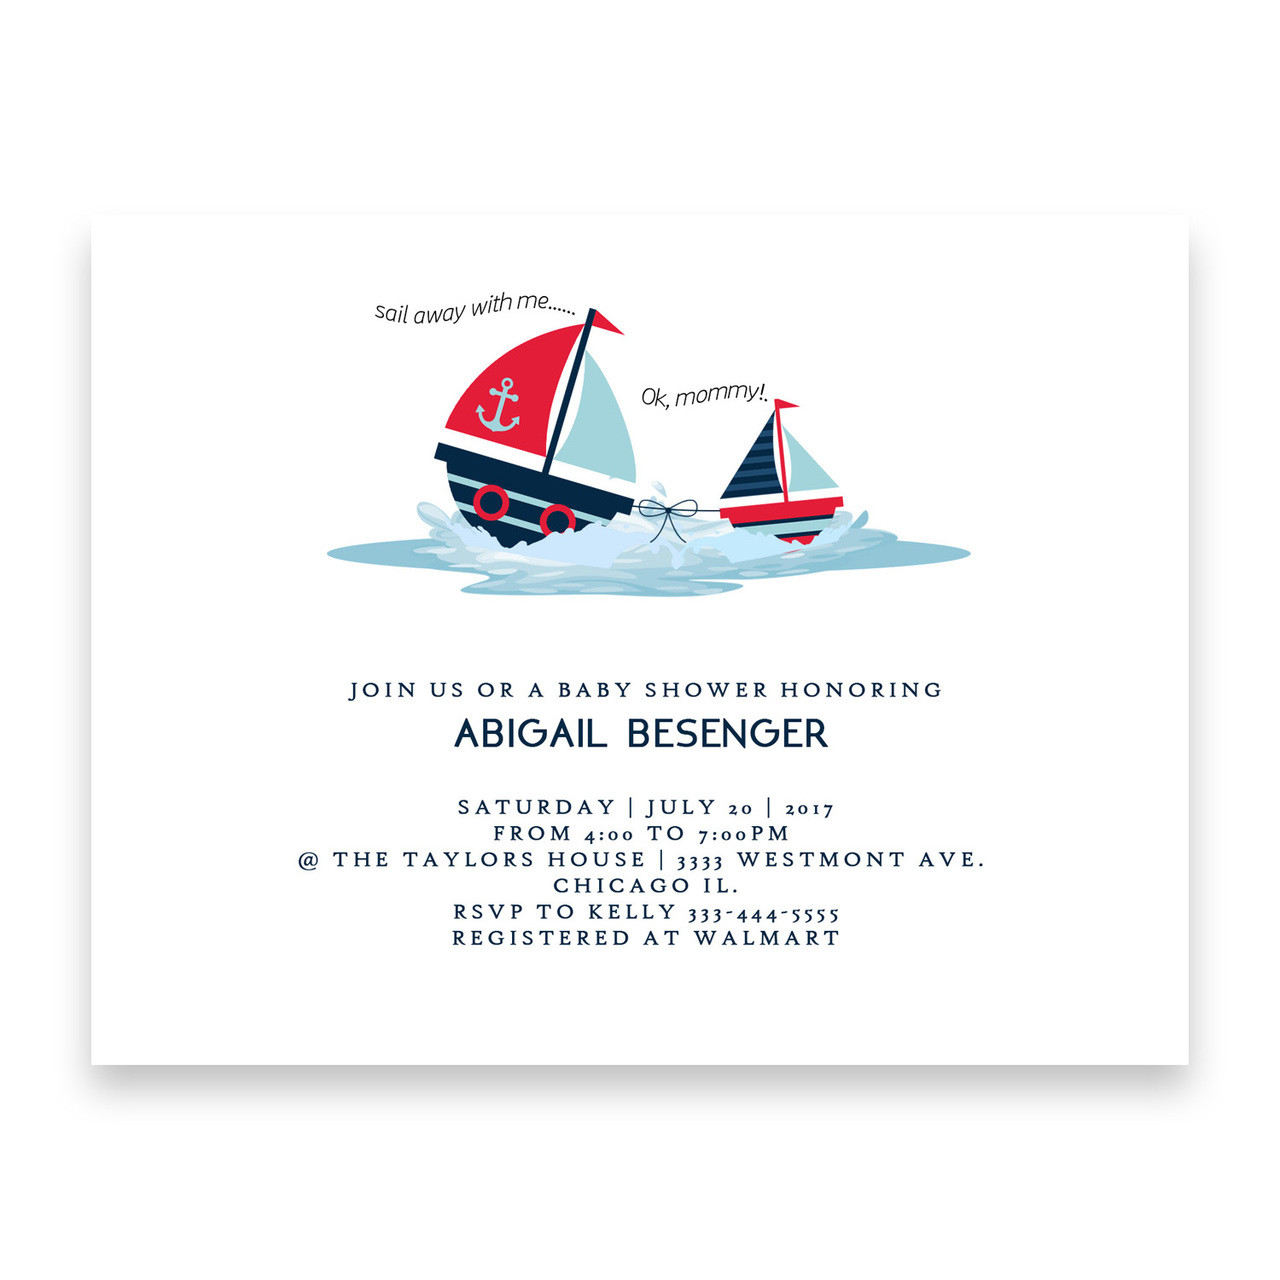 Nautical baby shower invitation, sail away with me